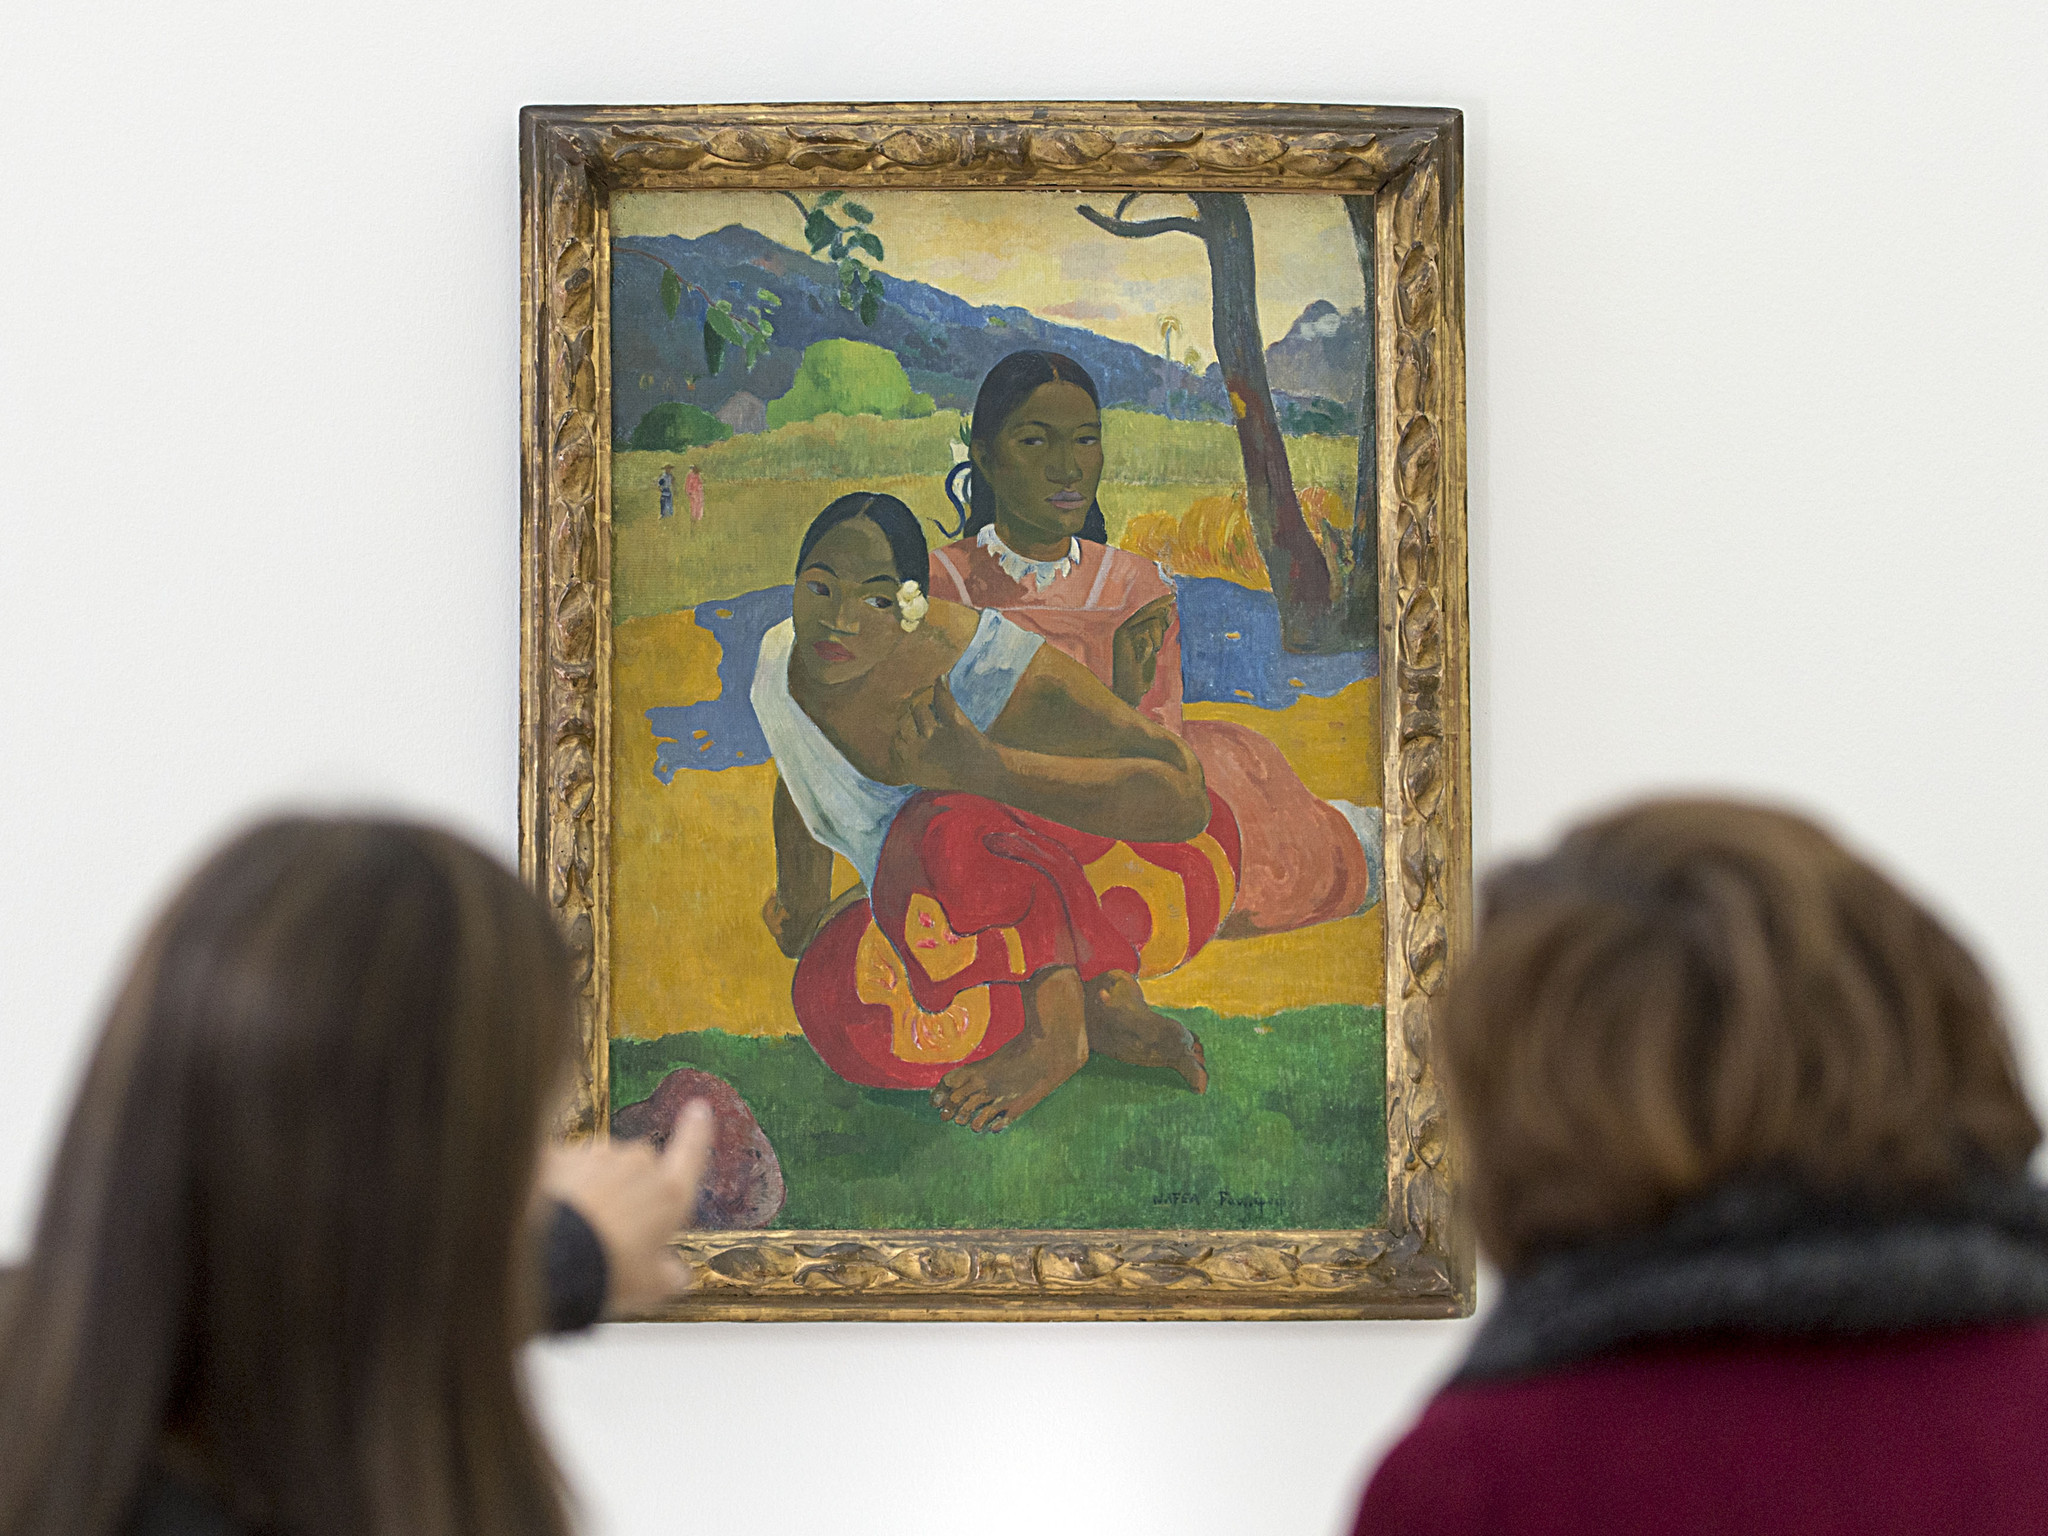 Sale of Gauguin painting valued at $300 million highly secretive